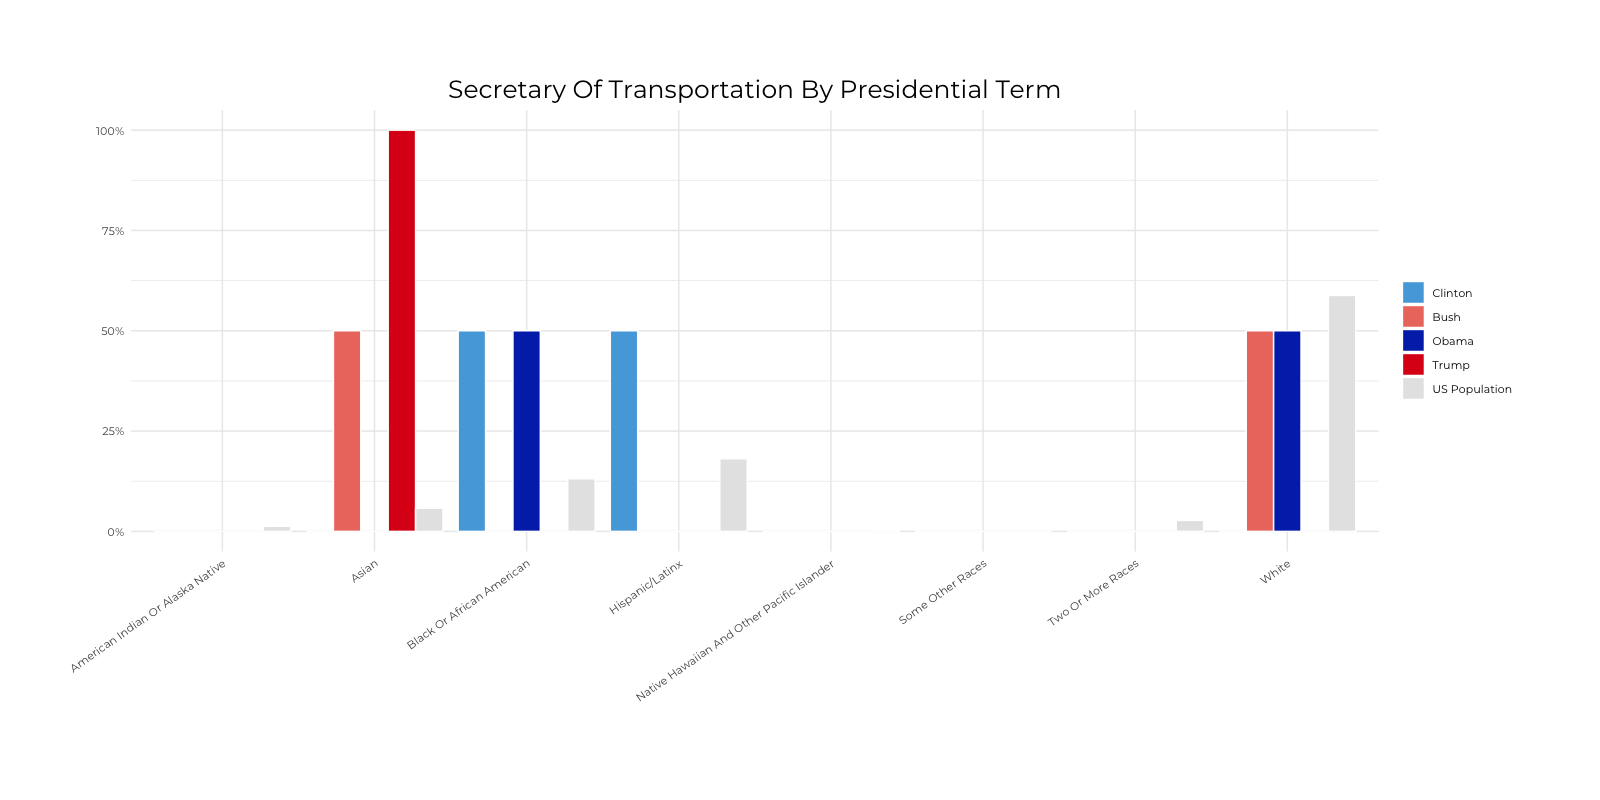 Graph about Racial Composition Comparison of Secretary of Transportation by Presidential Terms. More detailed text description below.